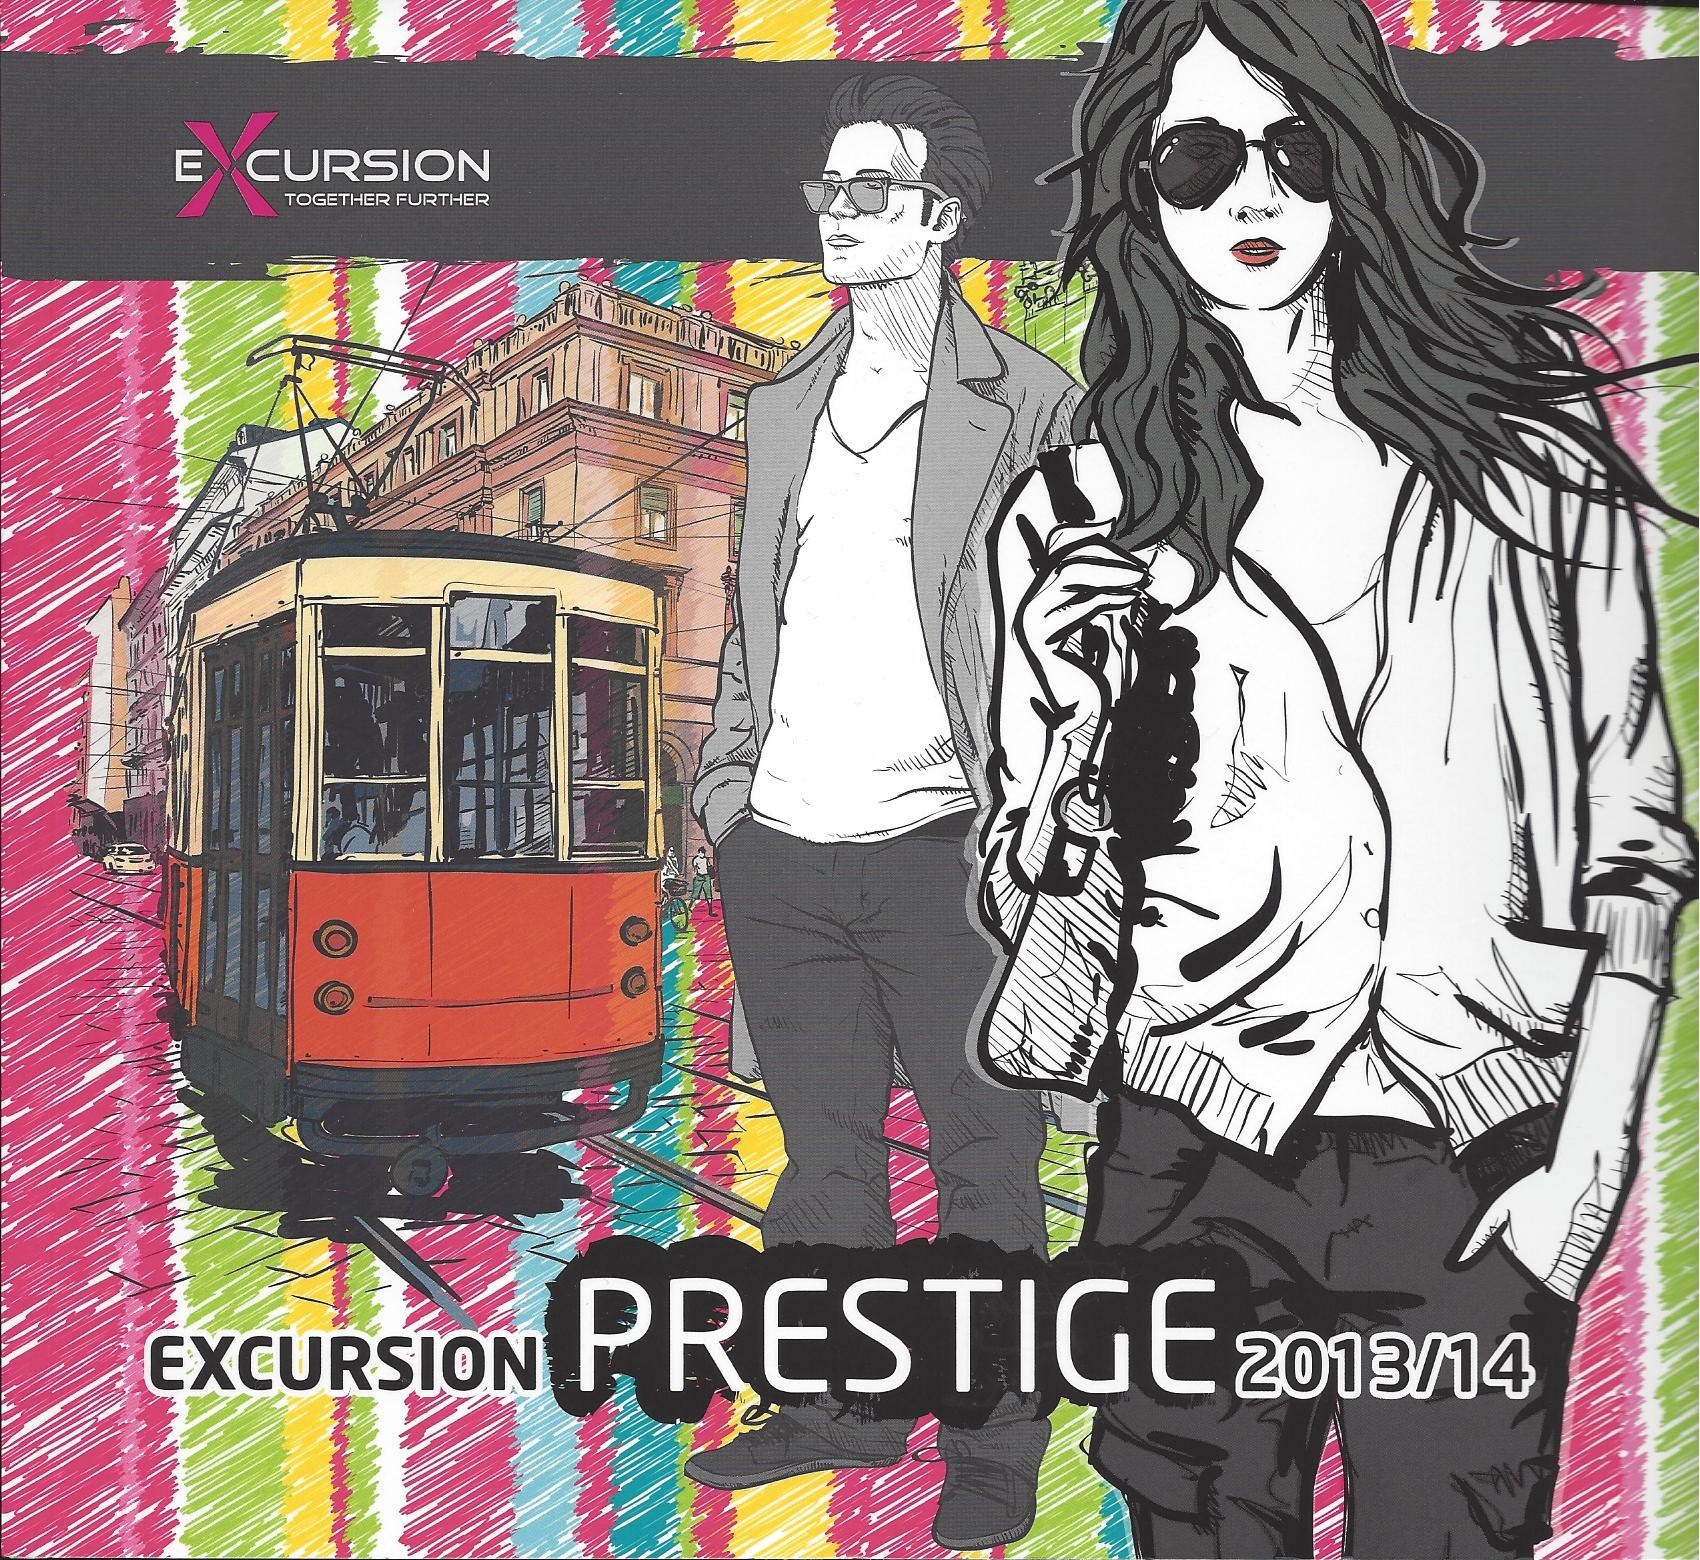 3-Excursion Prestige